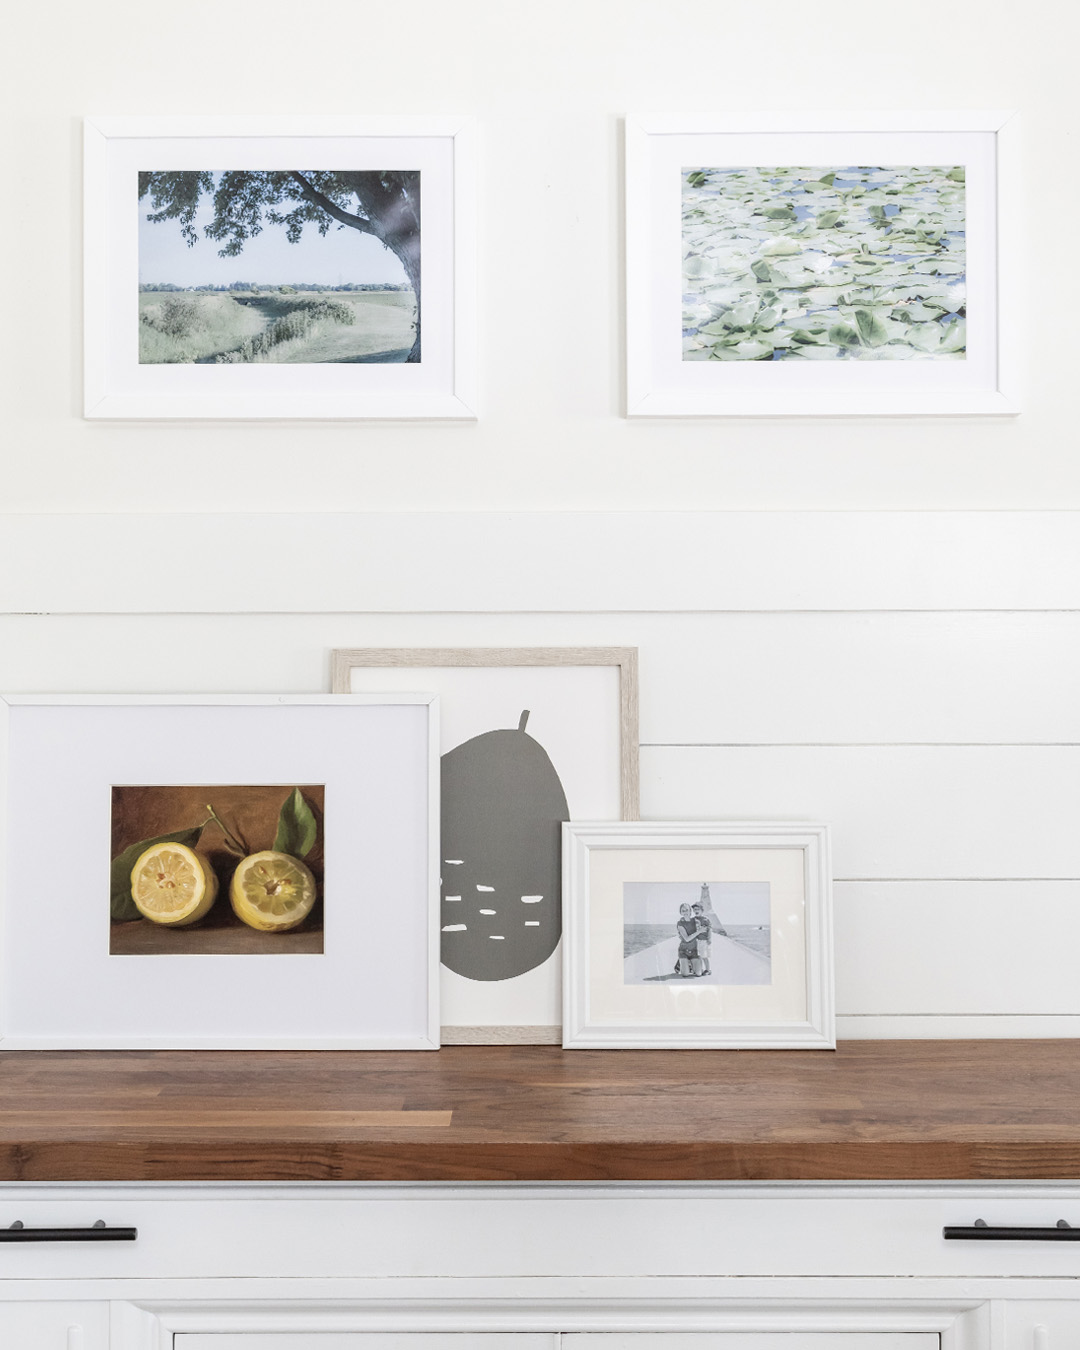 I'm always changing things and making little adjustments here and there, so today I'm sharing my latest little update which I think was particularly successful. :) Here's how to update a tired gallery wall!